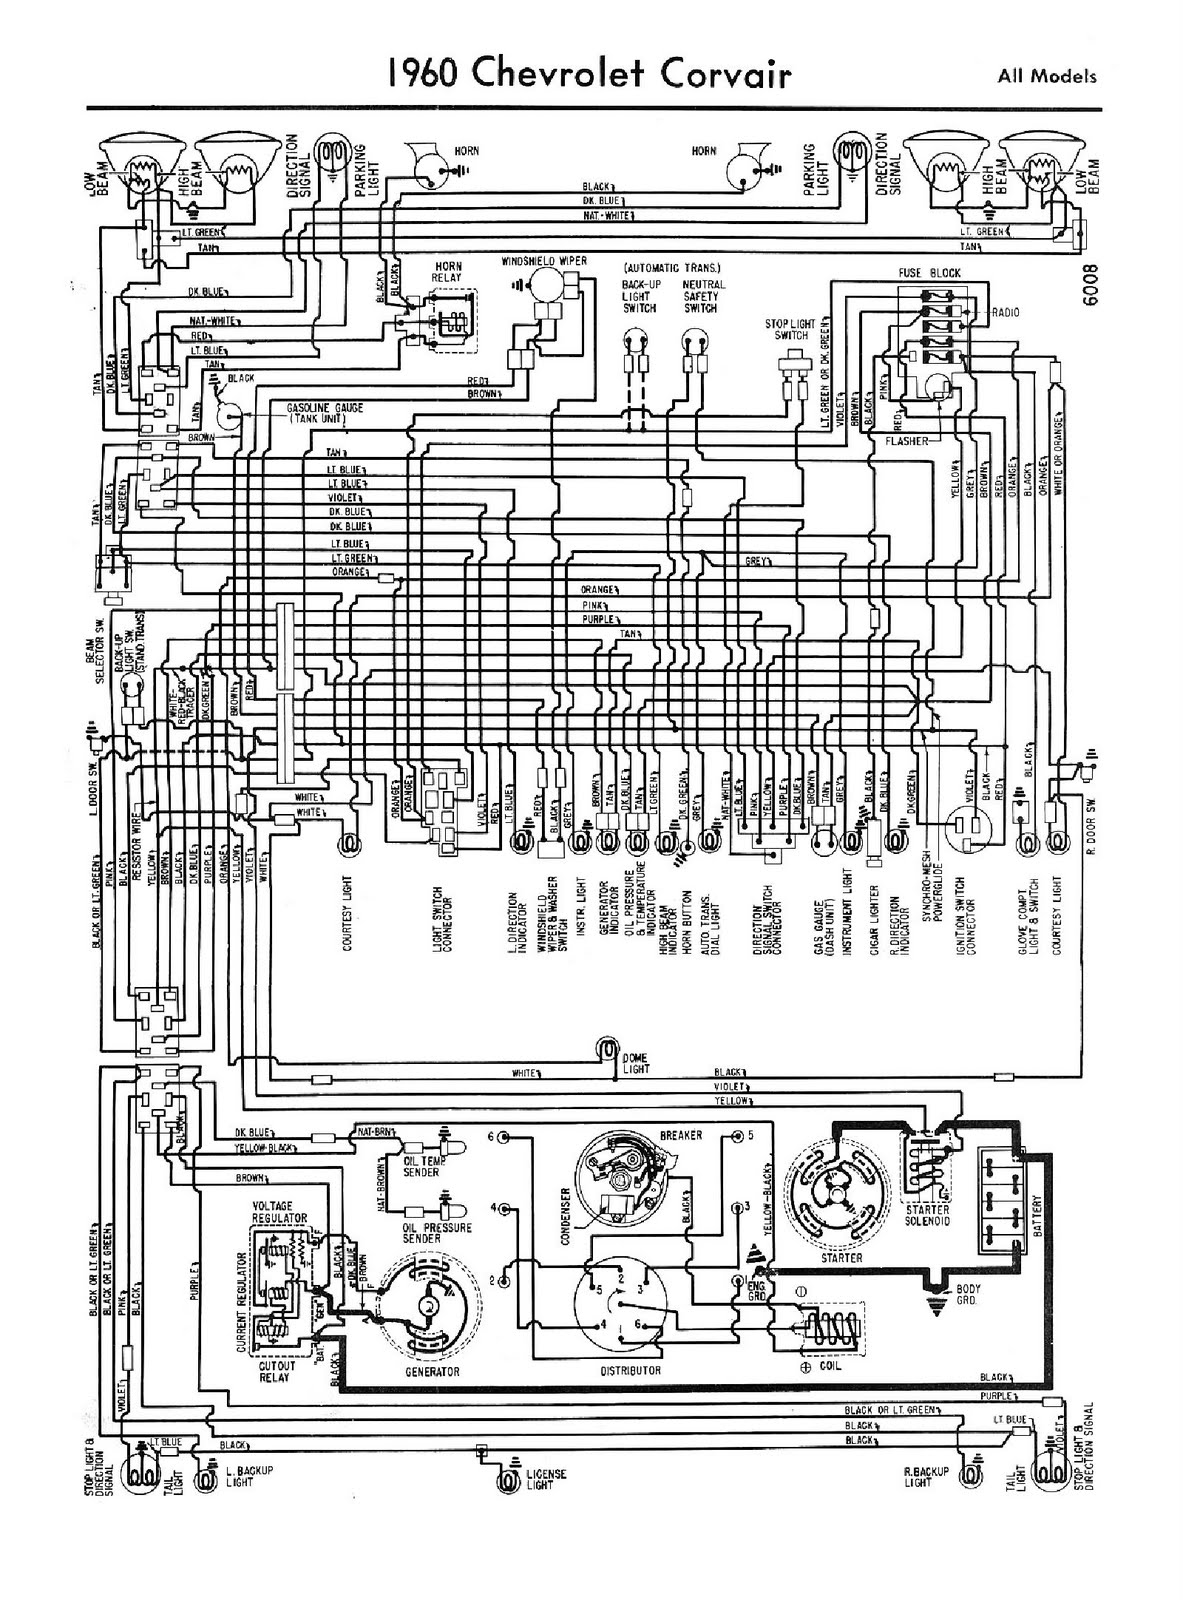 hight resolution of free auto wiring diagram 1960 chevrolet corvair wiring 1960 chevy impala wiring diagram 1960 chevy impala